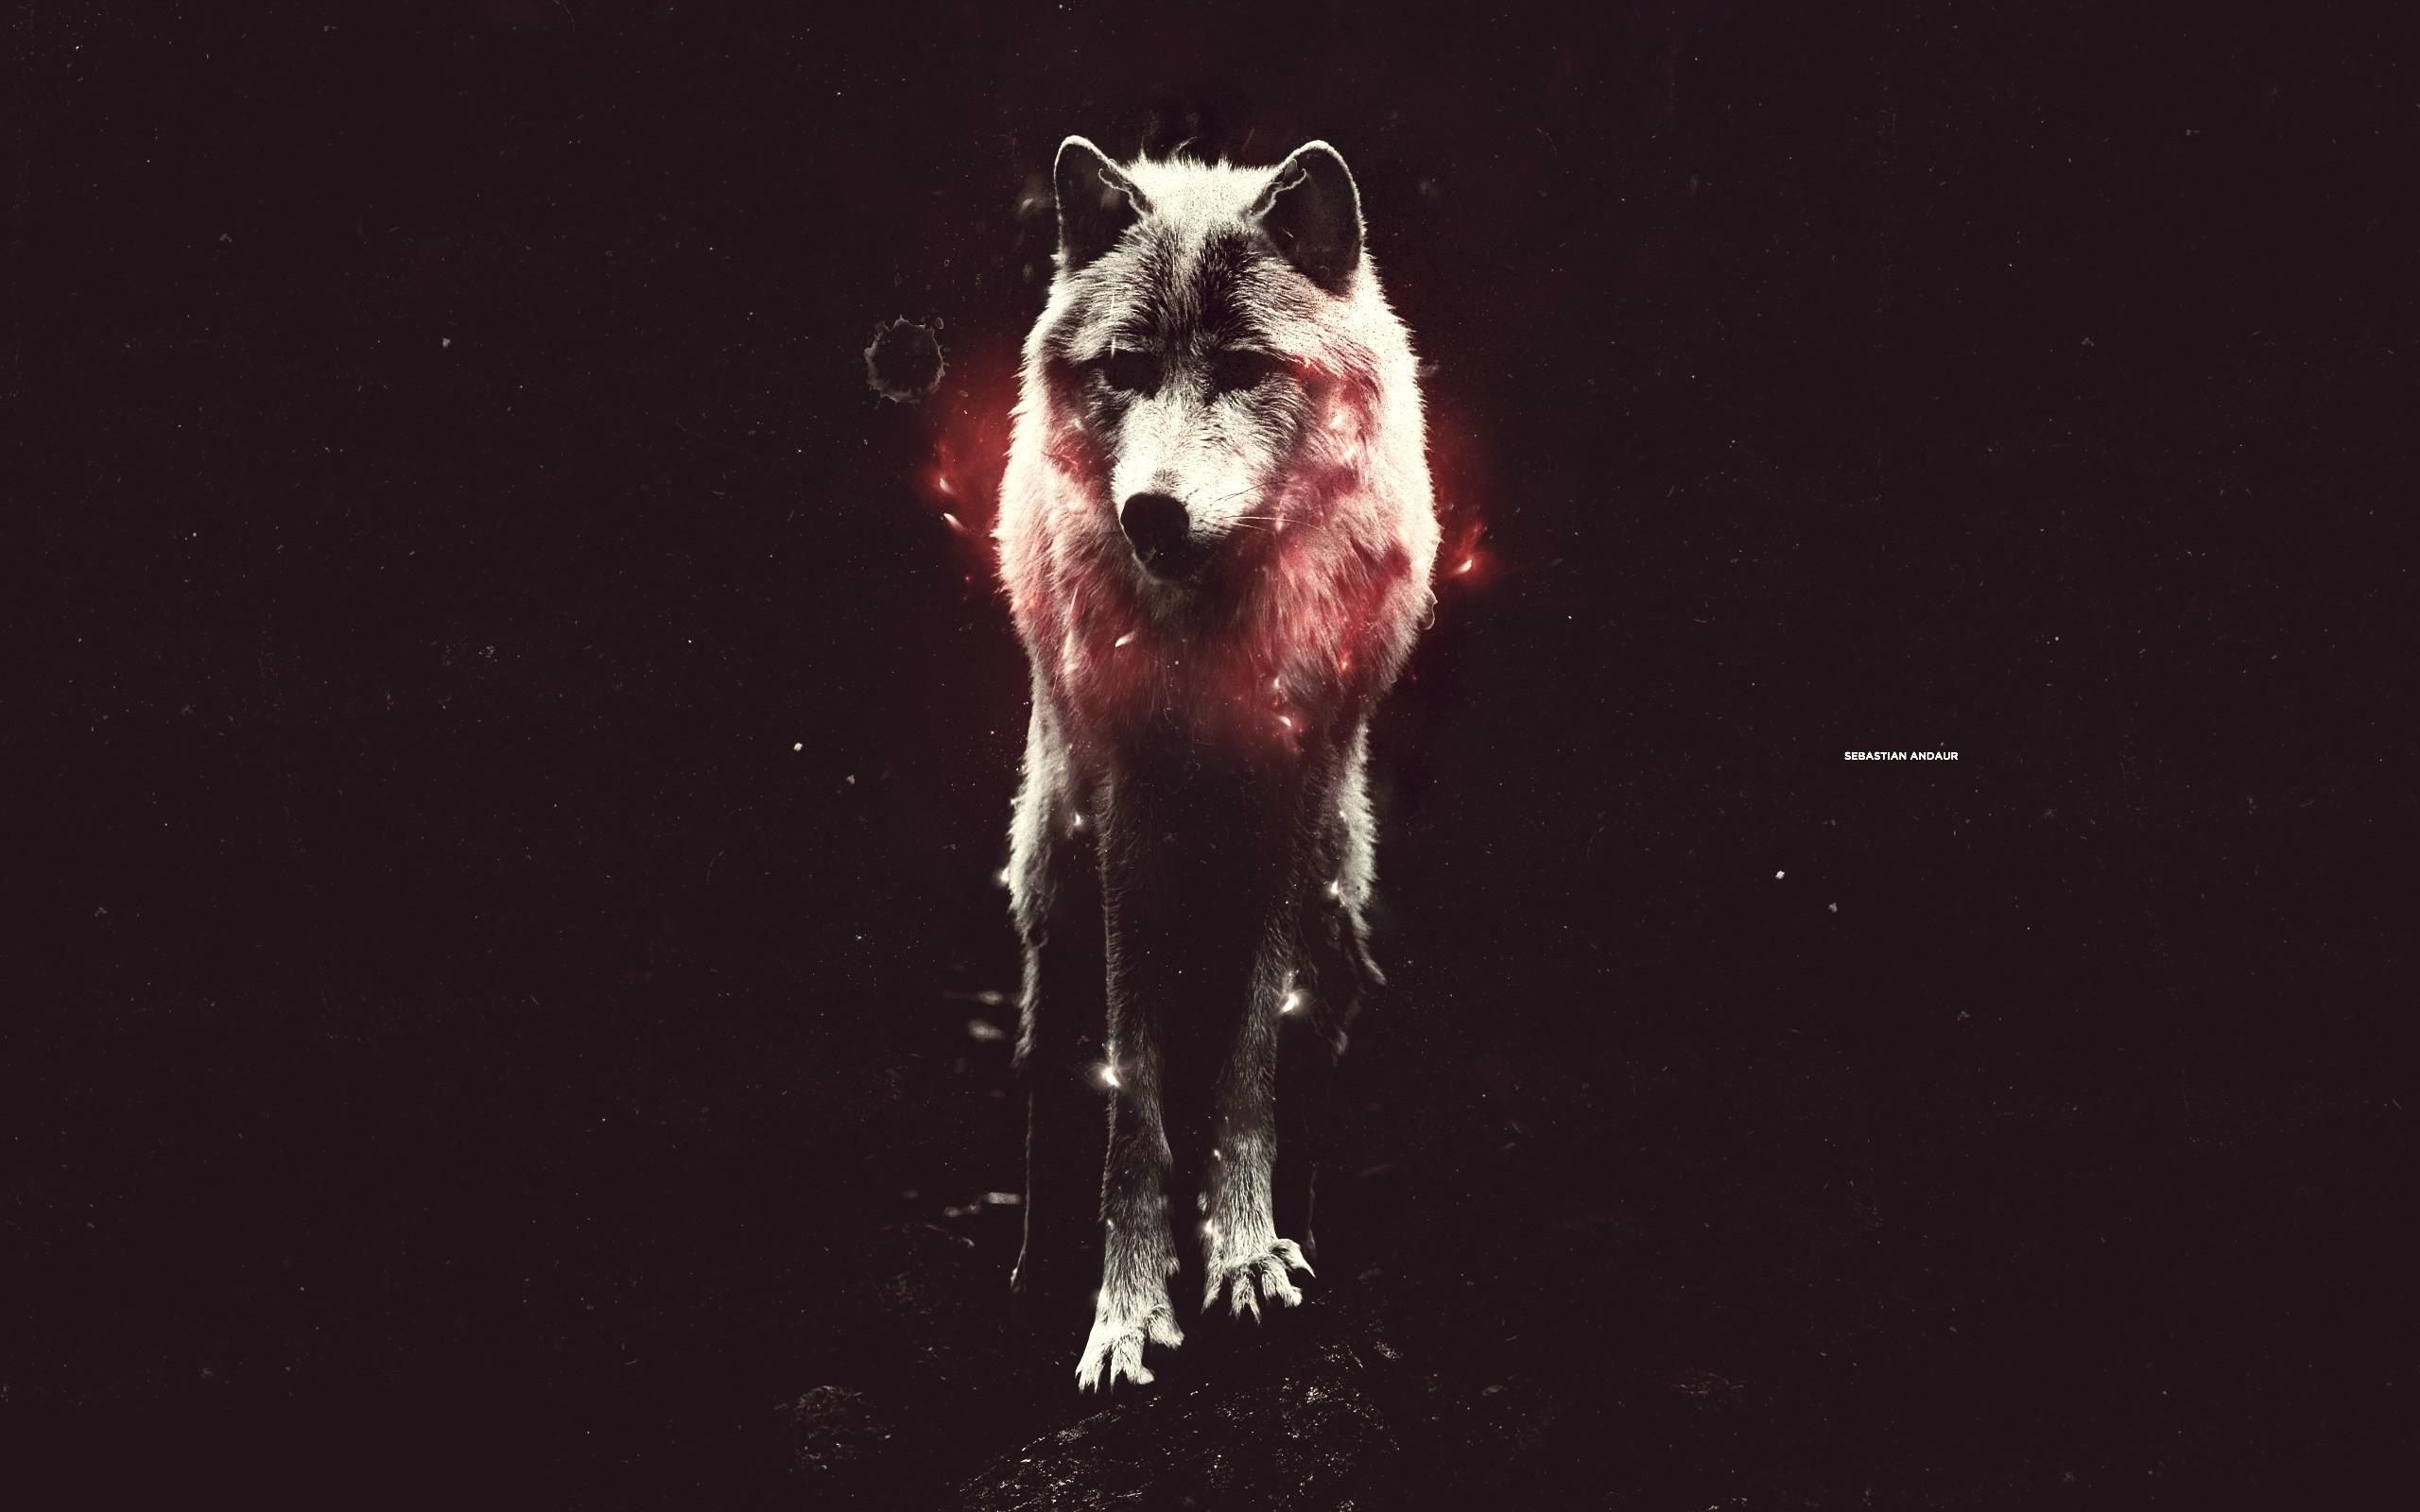 Wolf Hd Wallpapers 1080p Desktop Backgrounds Wolf Art Print Hipster Wallpaper Wolf Art